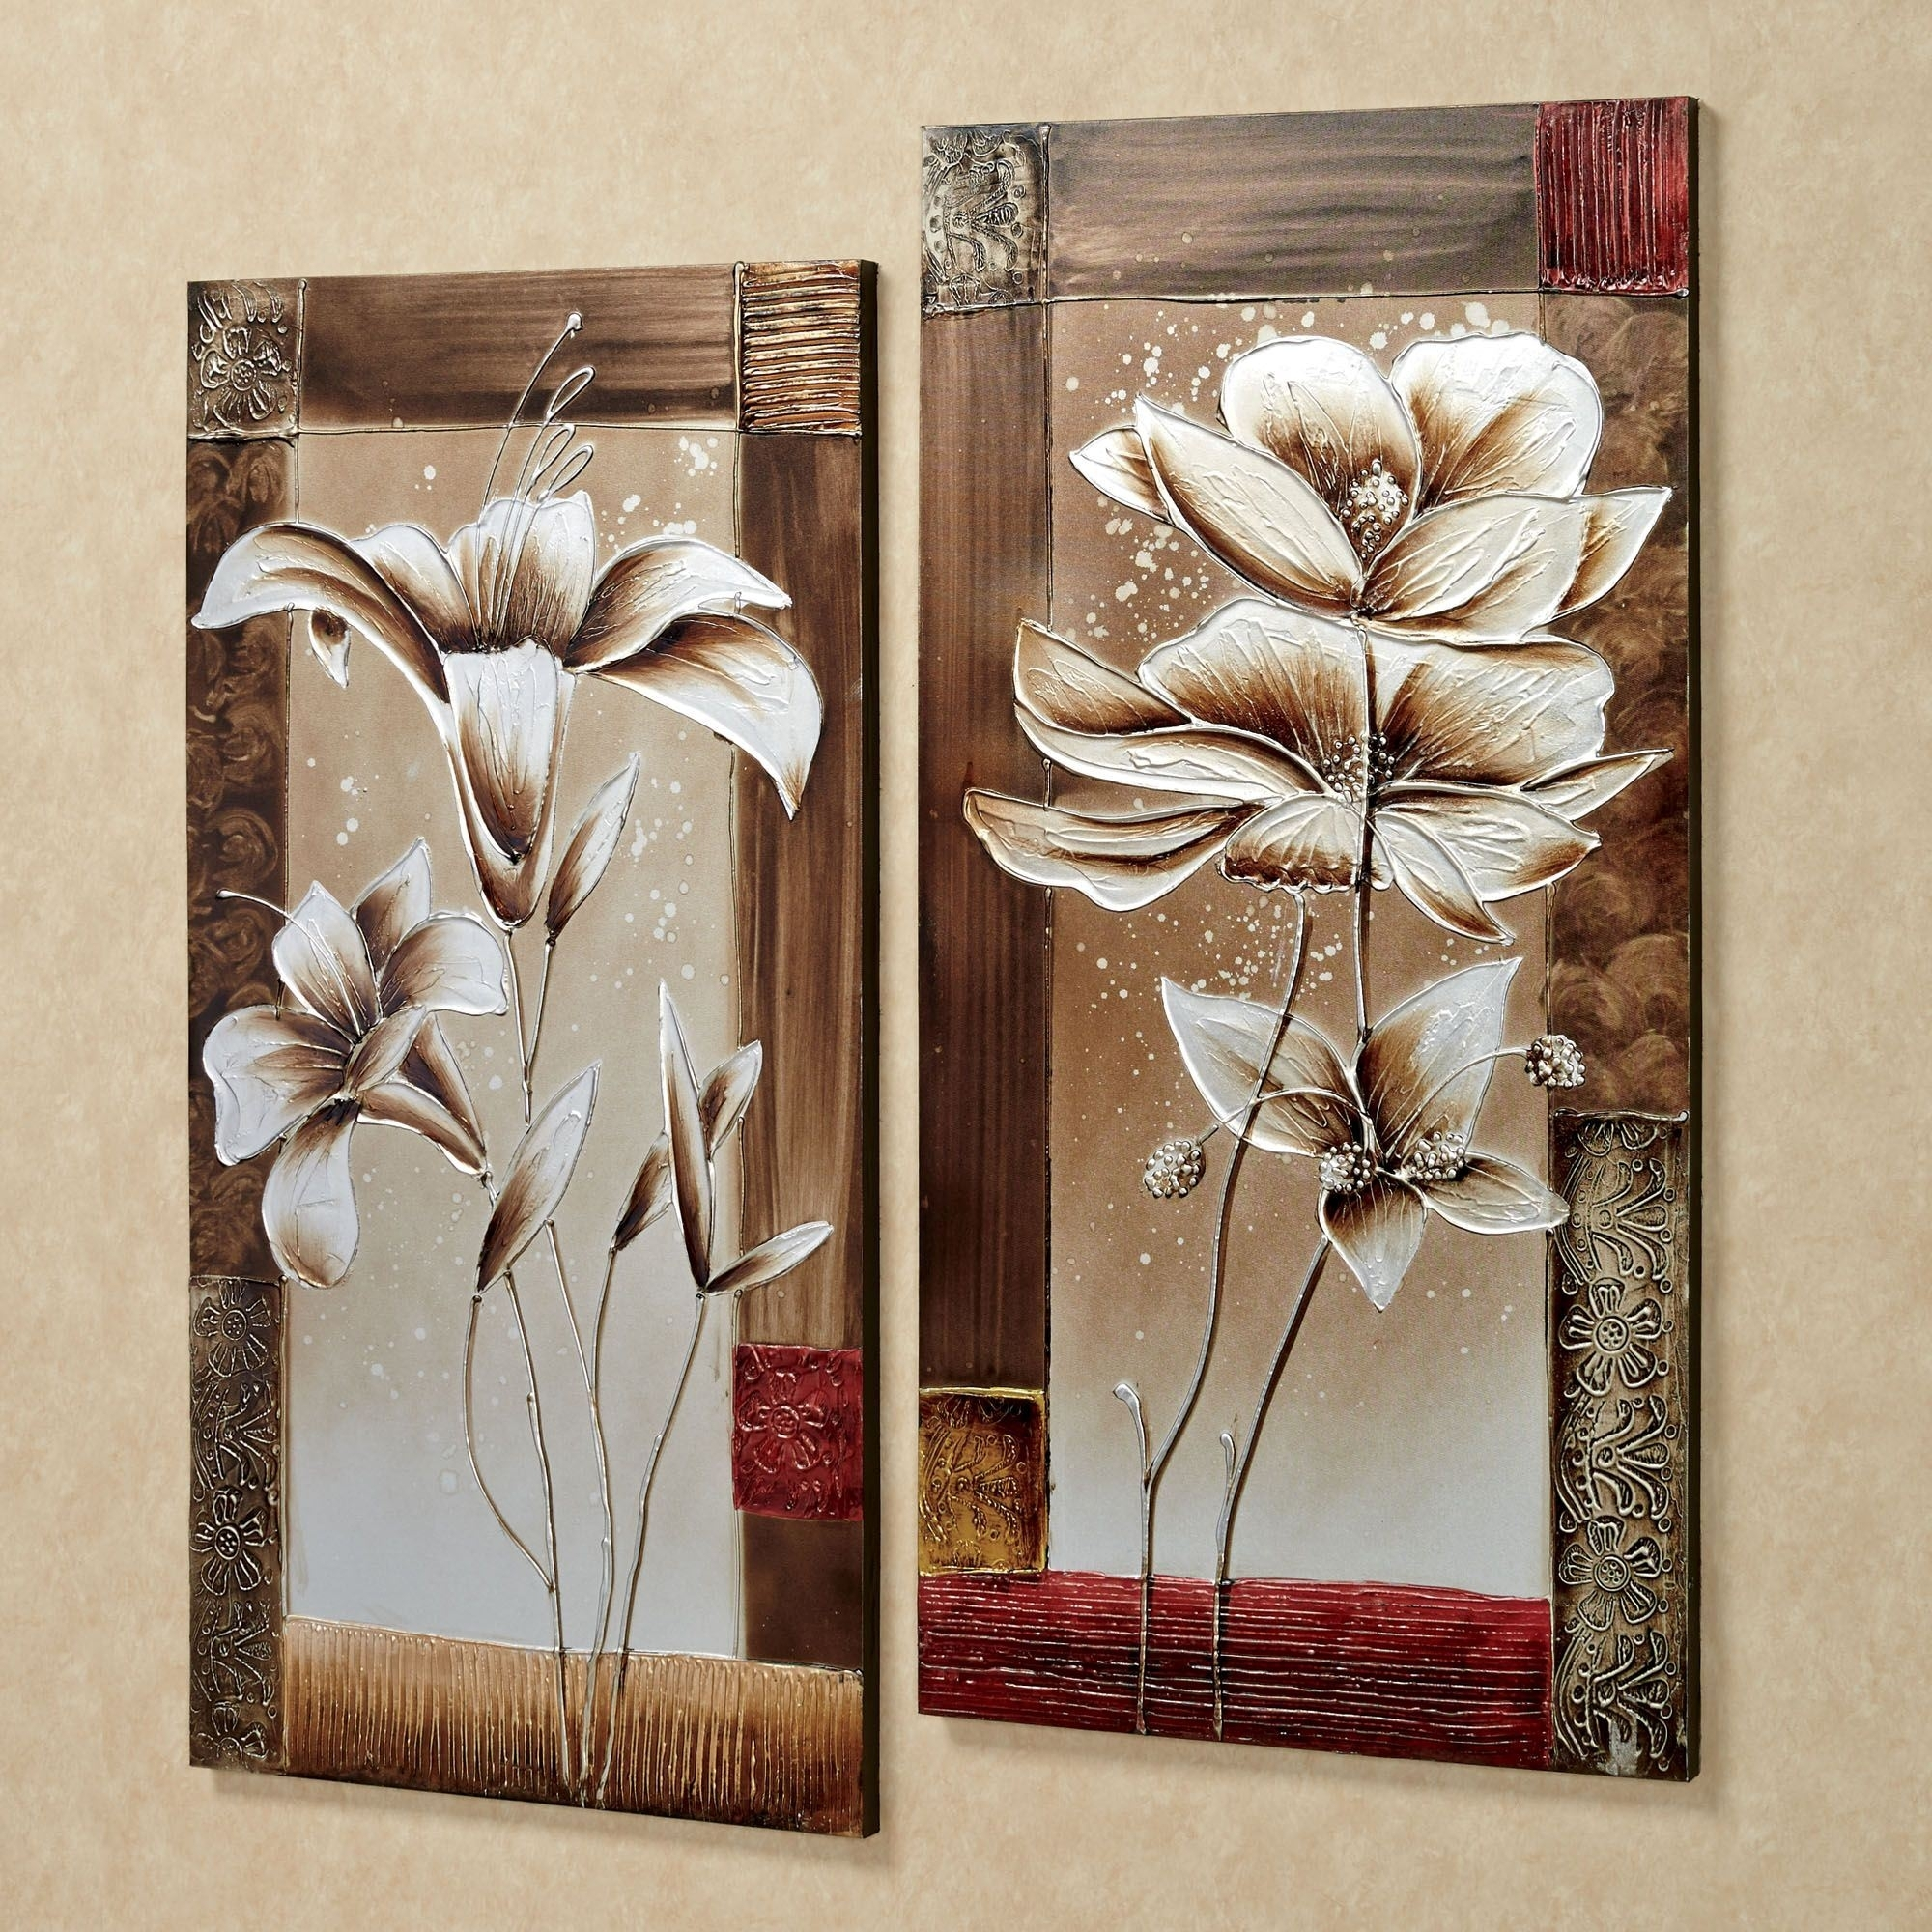 Petals Of Spring Floral Canvas Wall Art Set With Recent Canvas Wall Art Pairs (View 10 of 15)